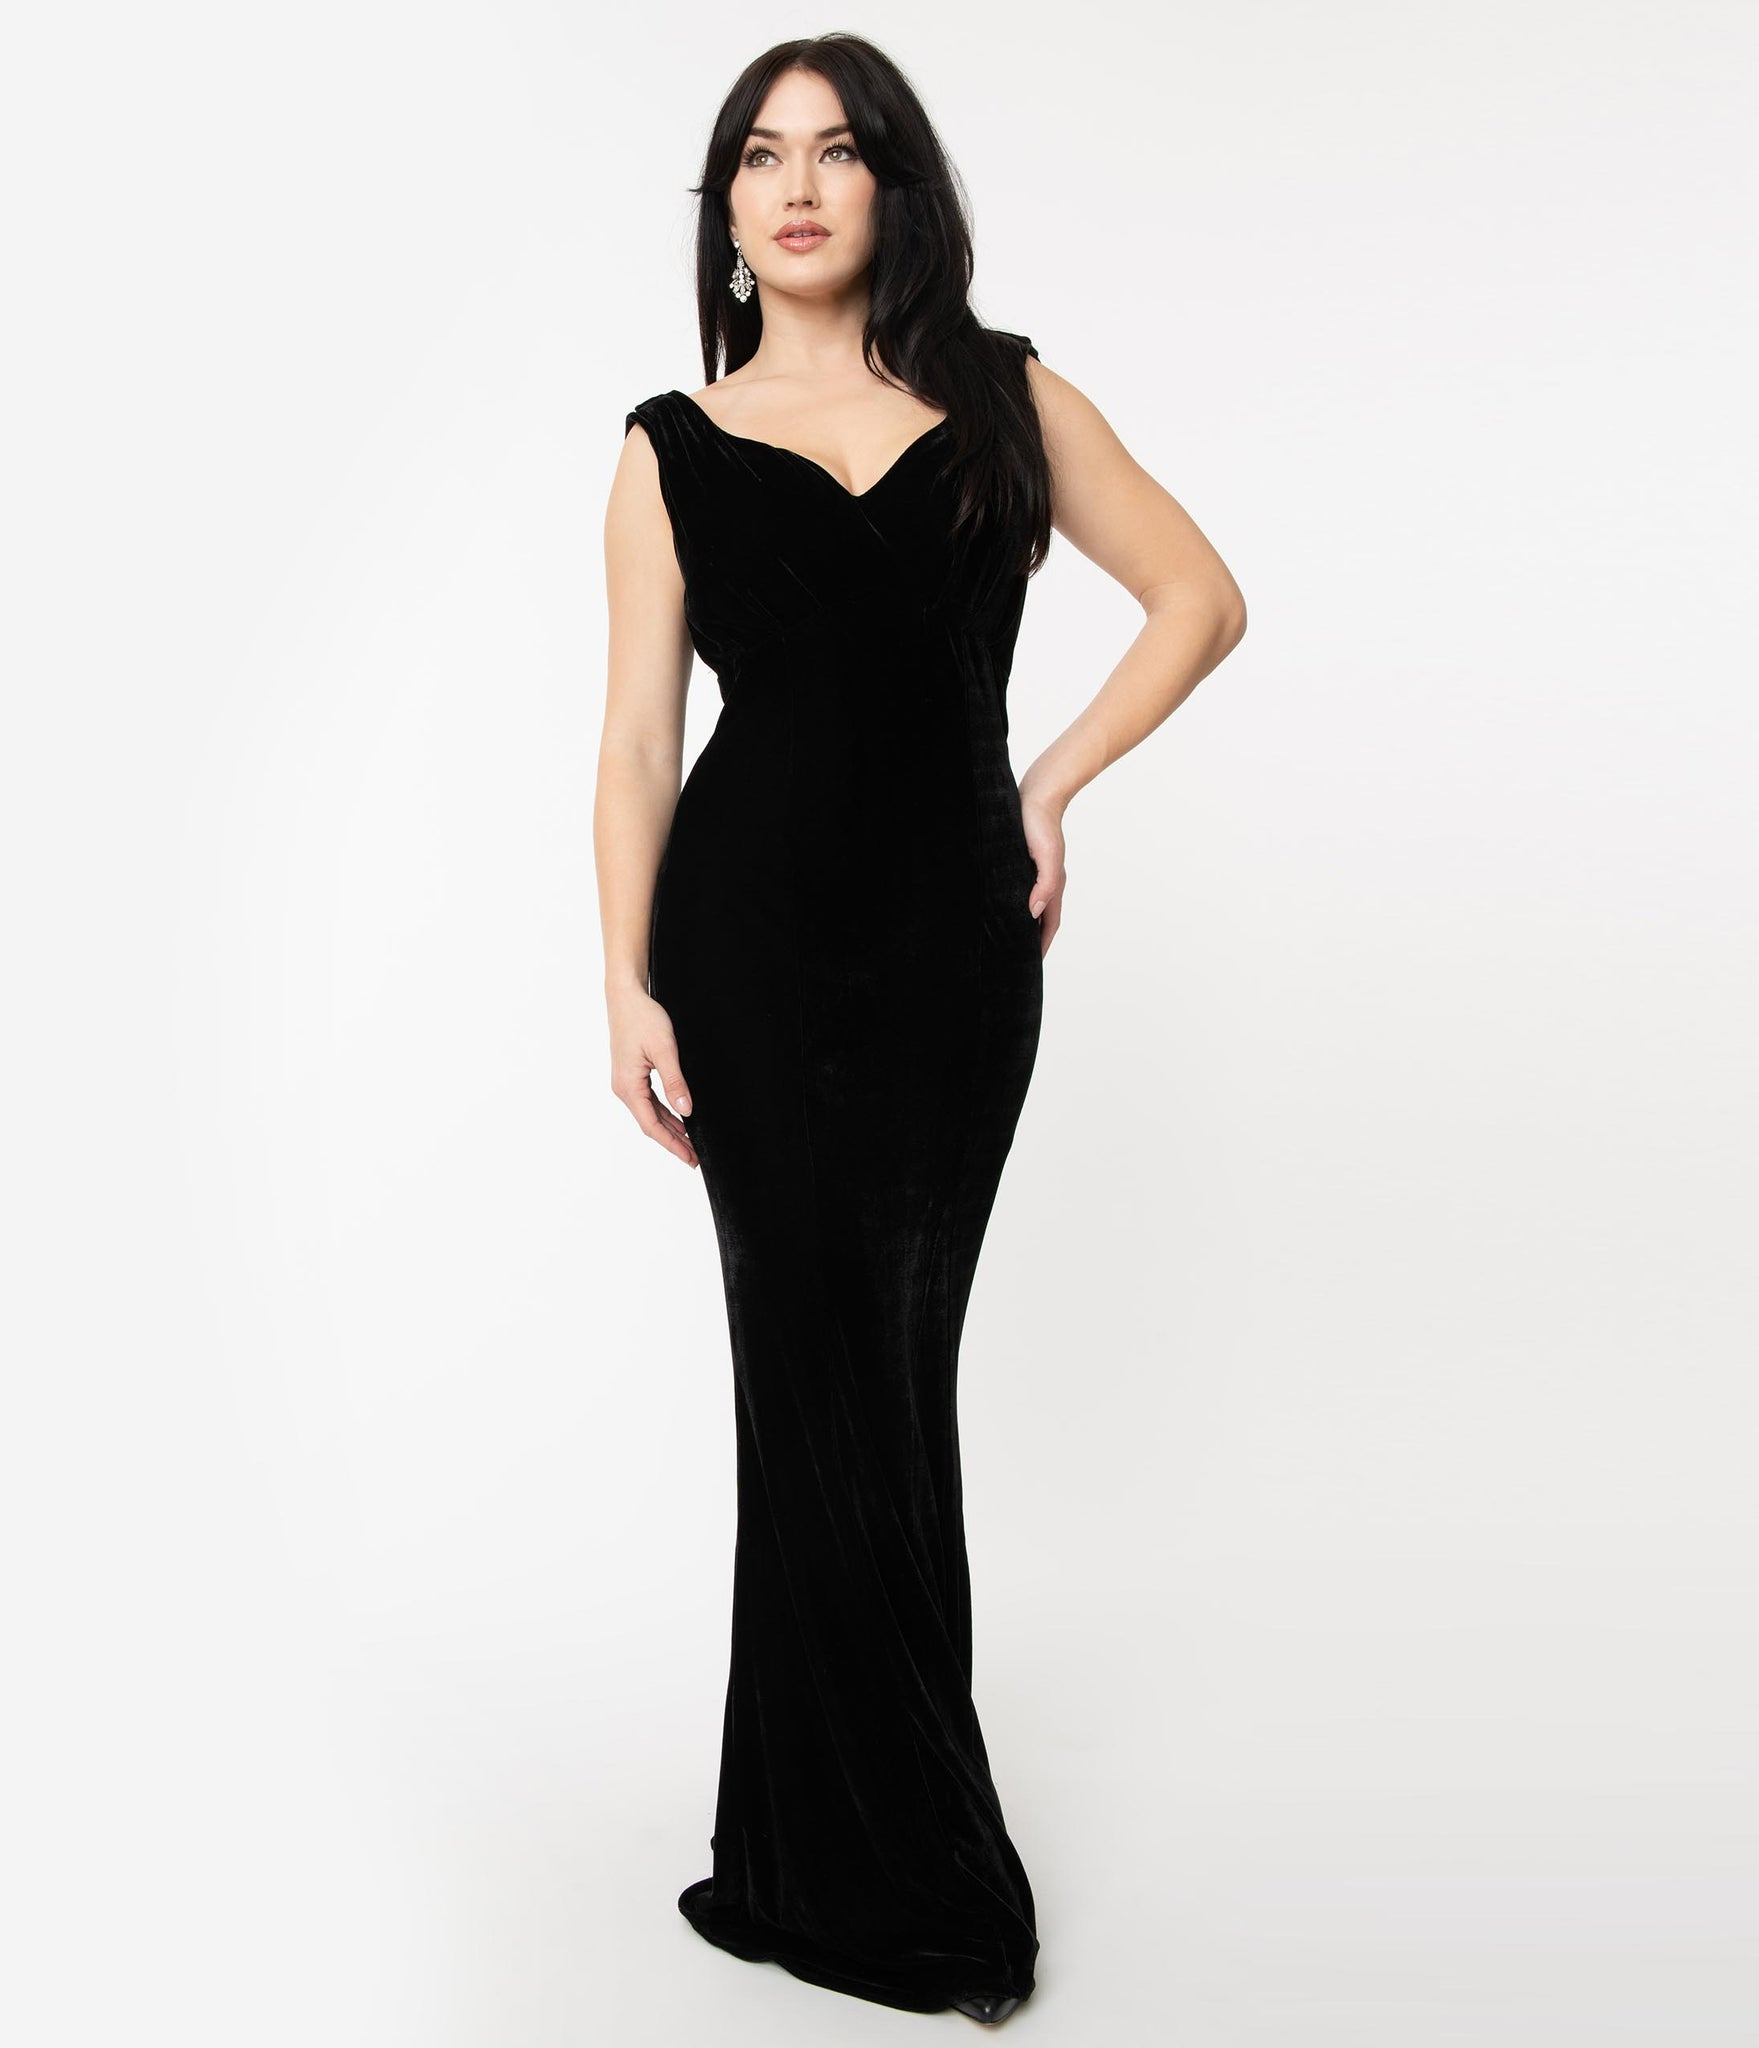 Unique Vintage 1930s Style Black Velvet Goldwyn Gown